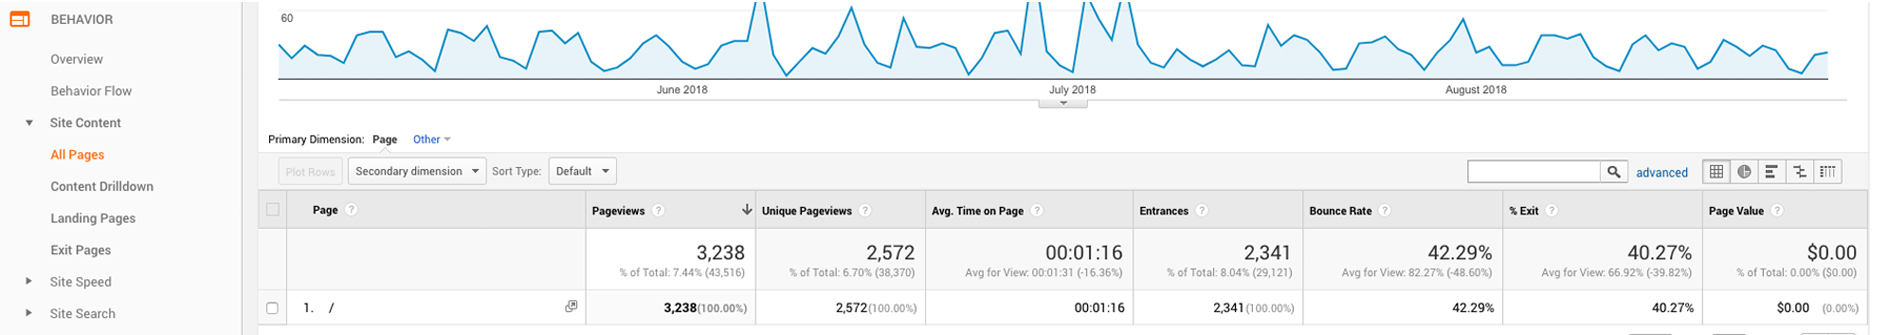 Google Analytics showing pageviews, bounce rate and exit rate